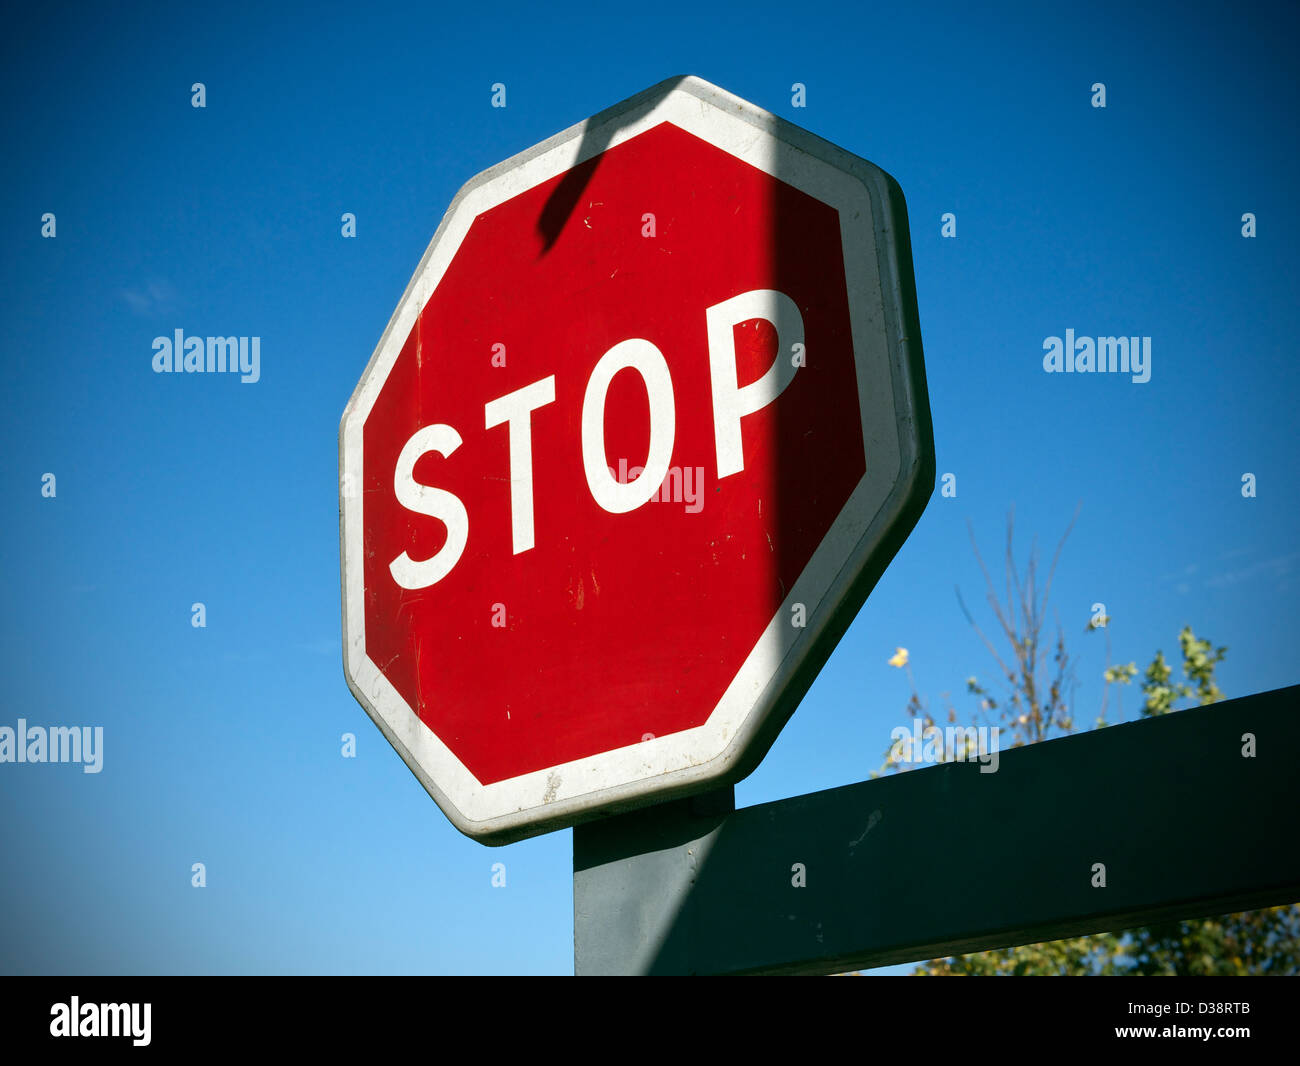 A traffic STOP sign - Stock Image